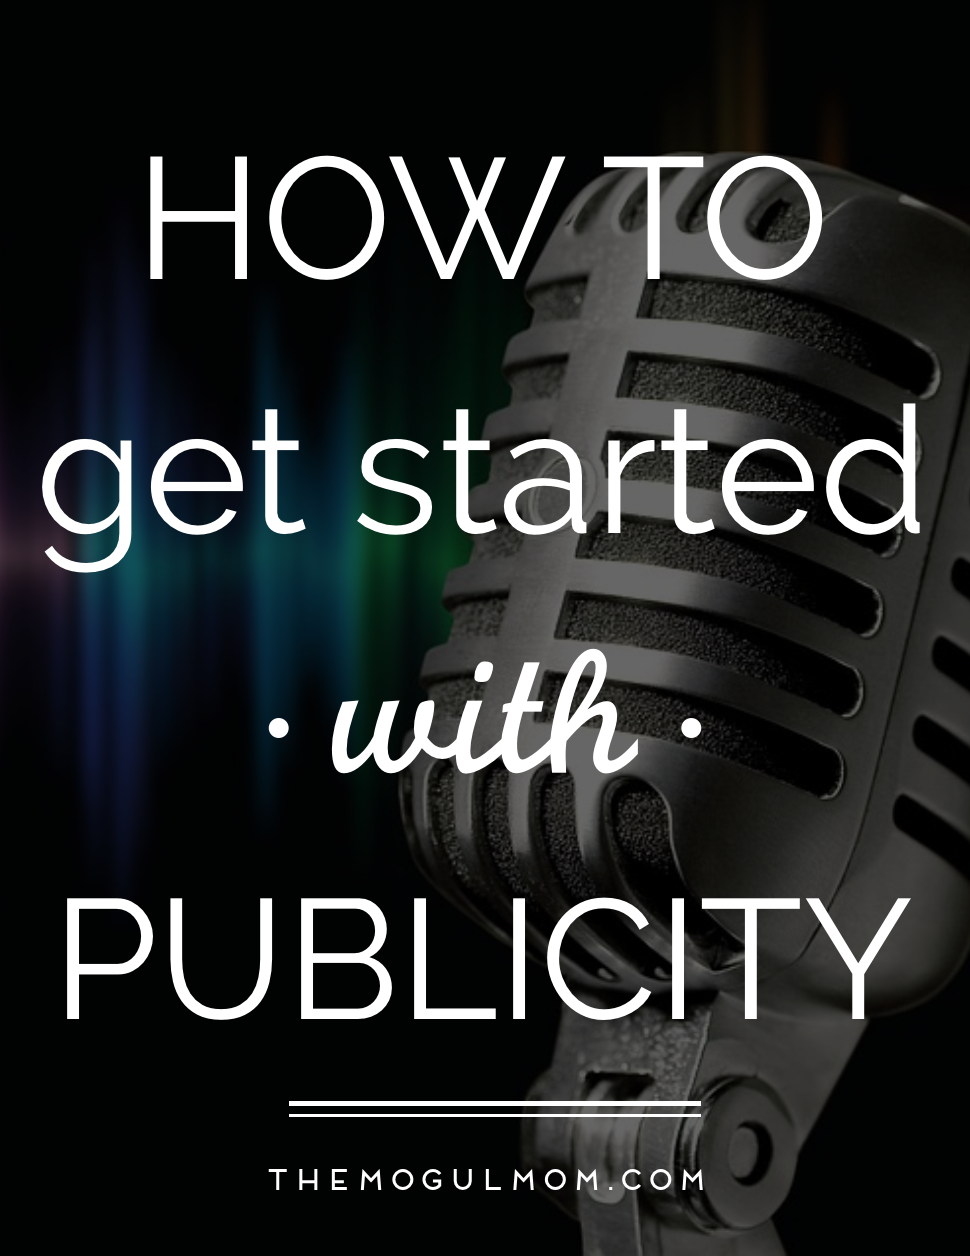 5 Easy Steps to Getting Started with Publicity